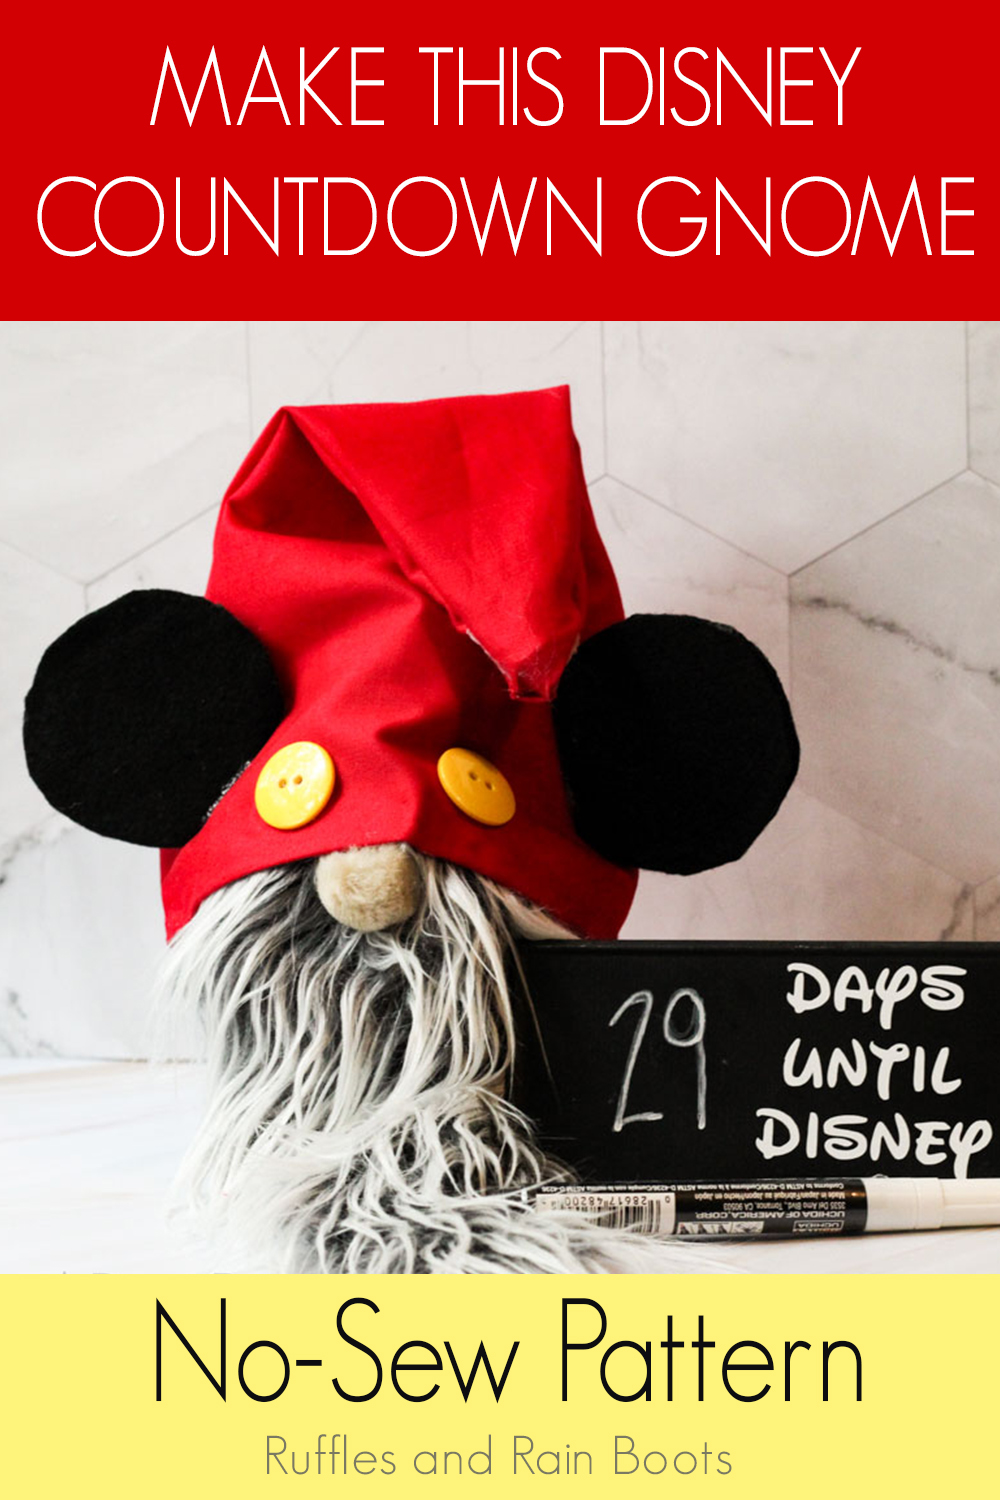 mickey gnome pattern make this disney countdown gnome no-sew pattern